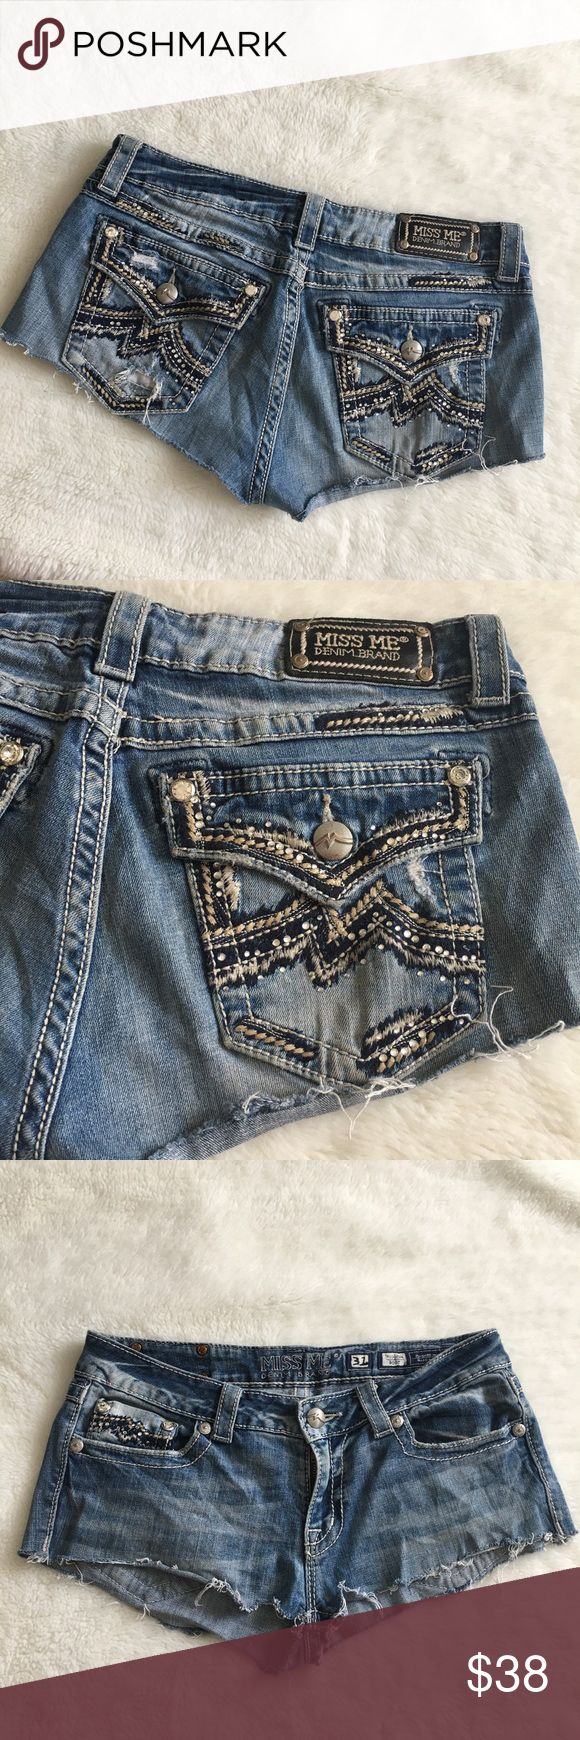 """Miss Me Jean Shorts size 31x1/4"""" Preowned authentic Miss Me Jeans Shorts size 31x1/4"""". Rise is   8"""" inches. Homemade. Used to be Bootcut jeans. Signs of normal regular wear. Please look at pictures for better reference. Happy shopping. Miss Me Shorts Jean Shorts"""